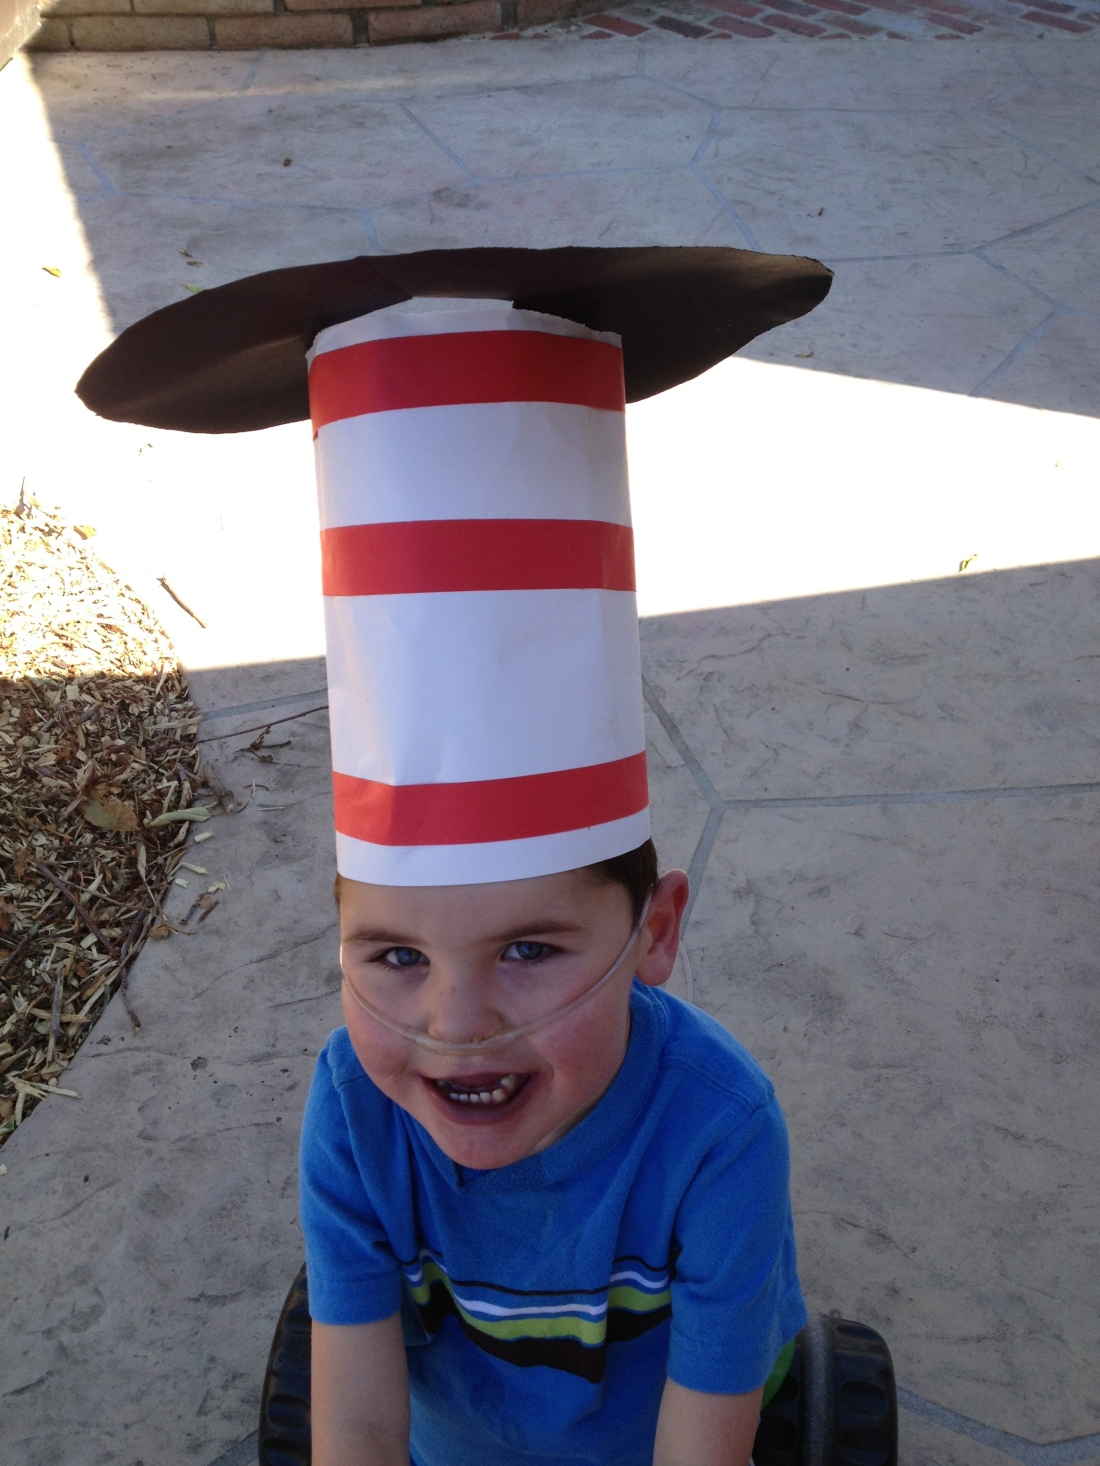 Dr. Seuss Day at Rudy's school.